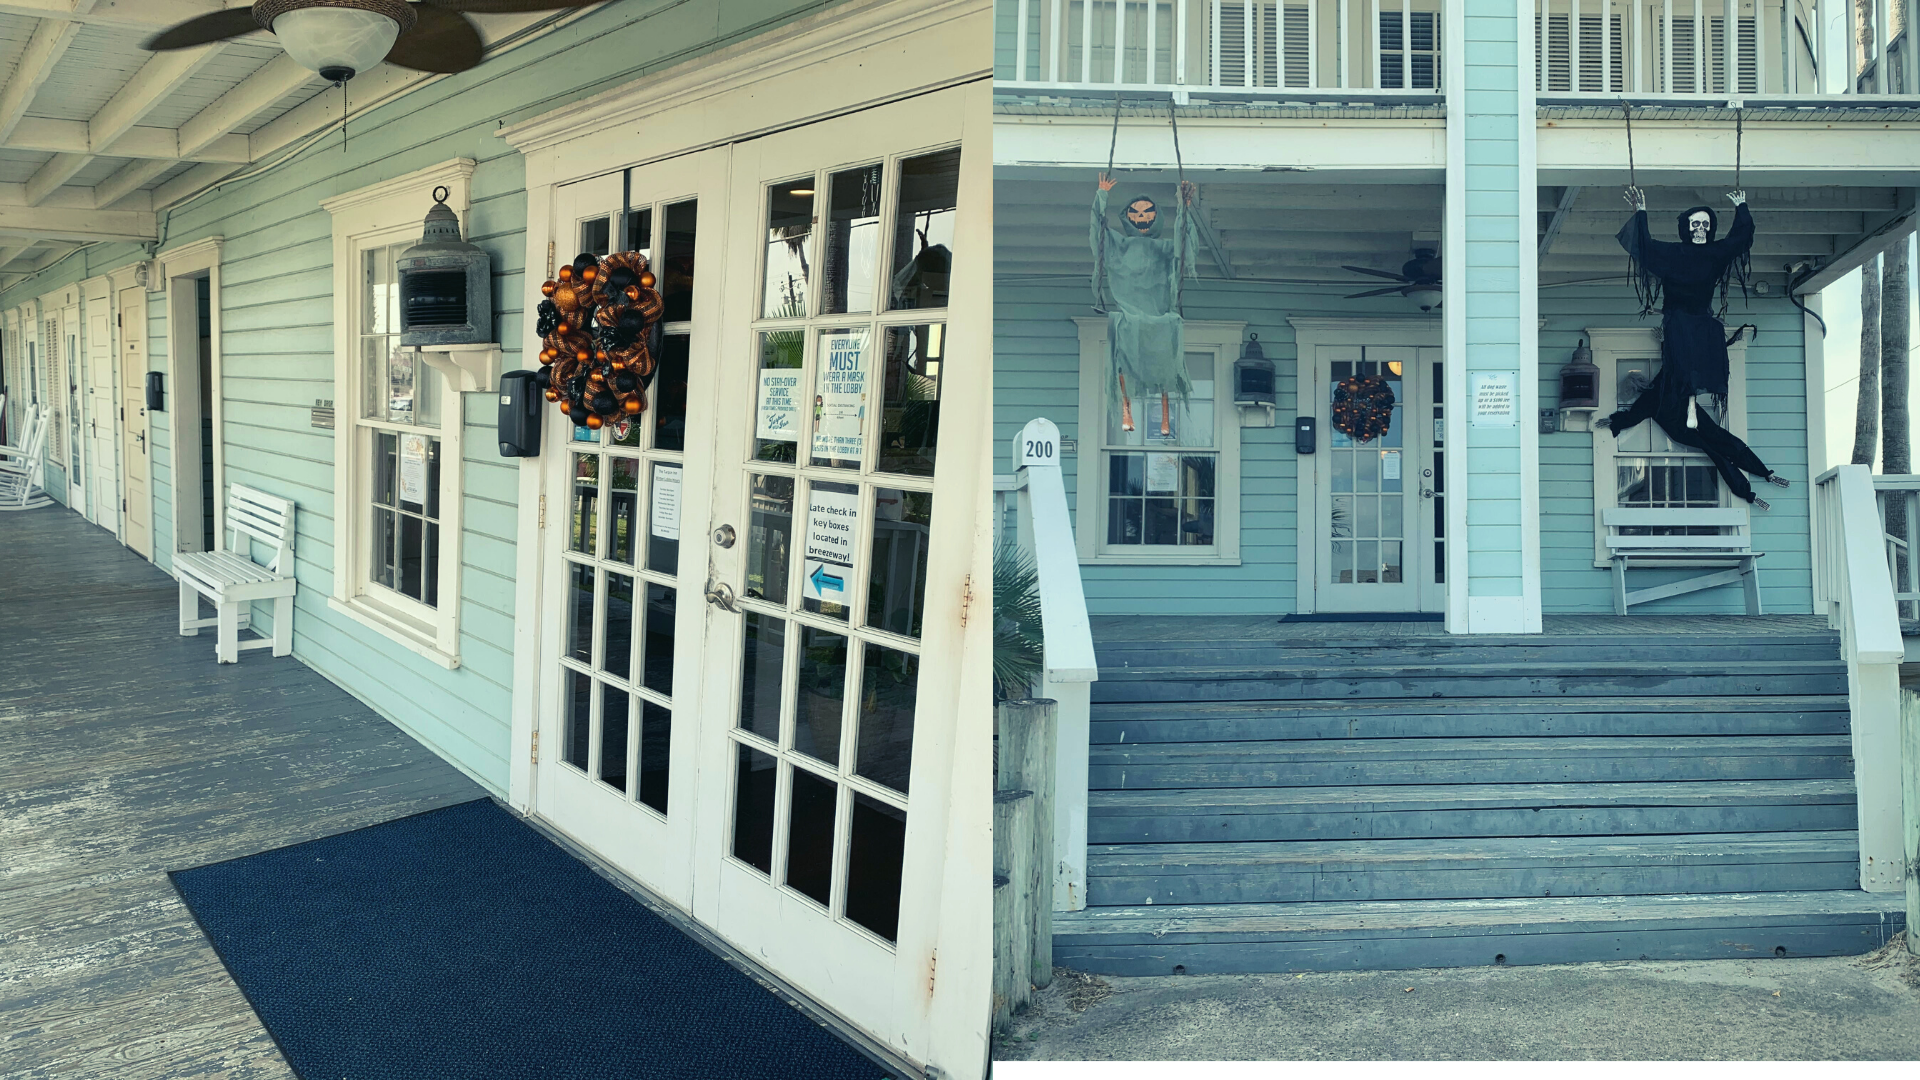 Photos of the front entrance and breezeway of the Tarpon Inn